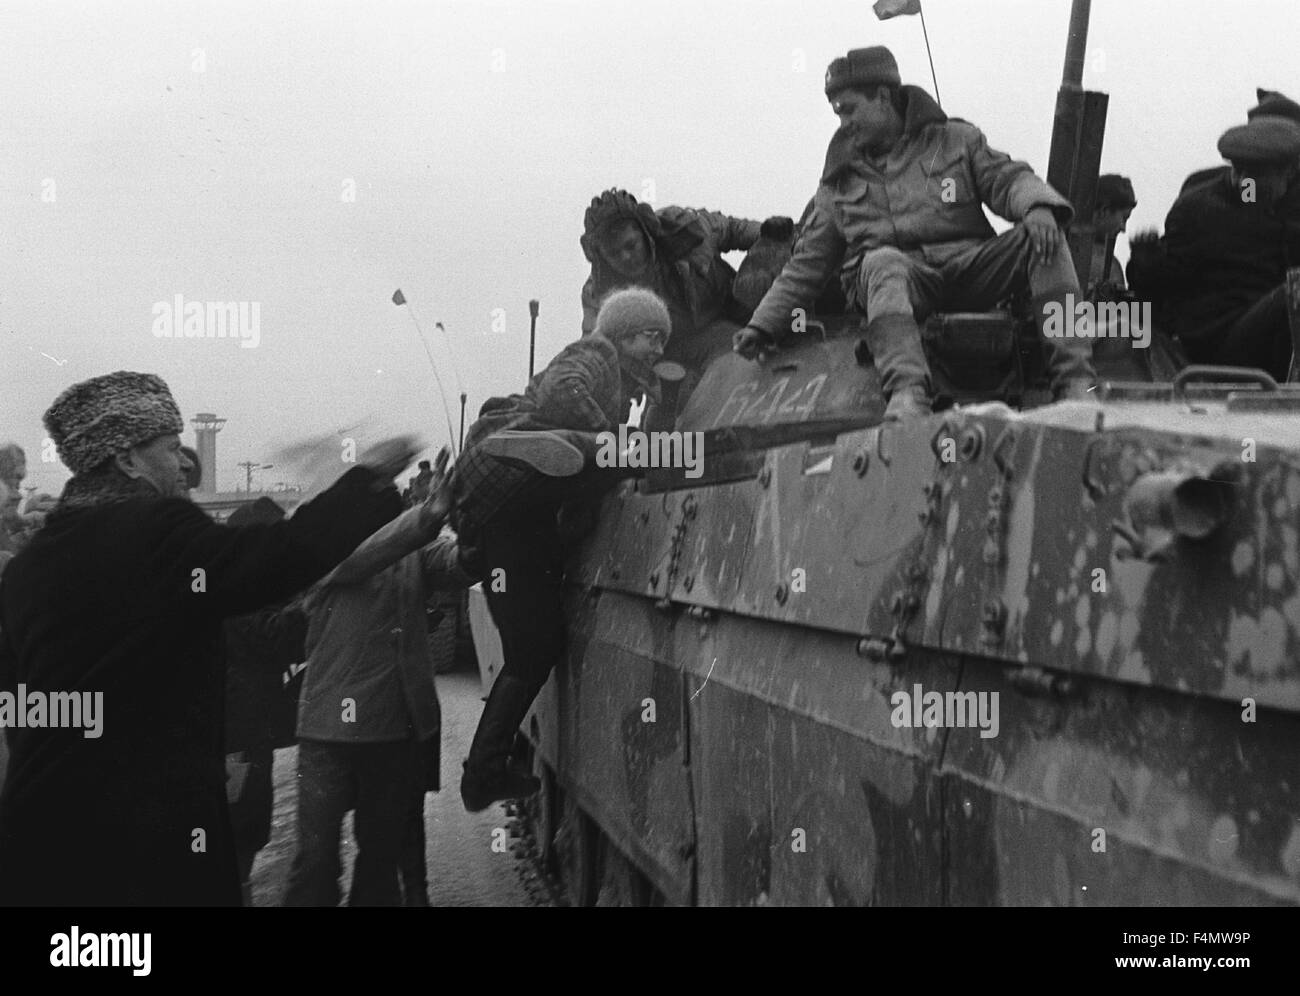 Soviet Afghanistan war - Page 6 Ussr-termez-withdrawal-of-soviet-forces-from-afghanistan-soldiers-F4MW9P